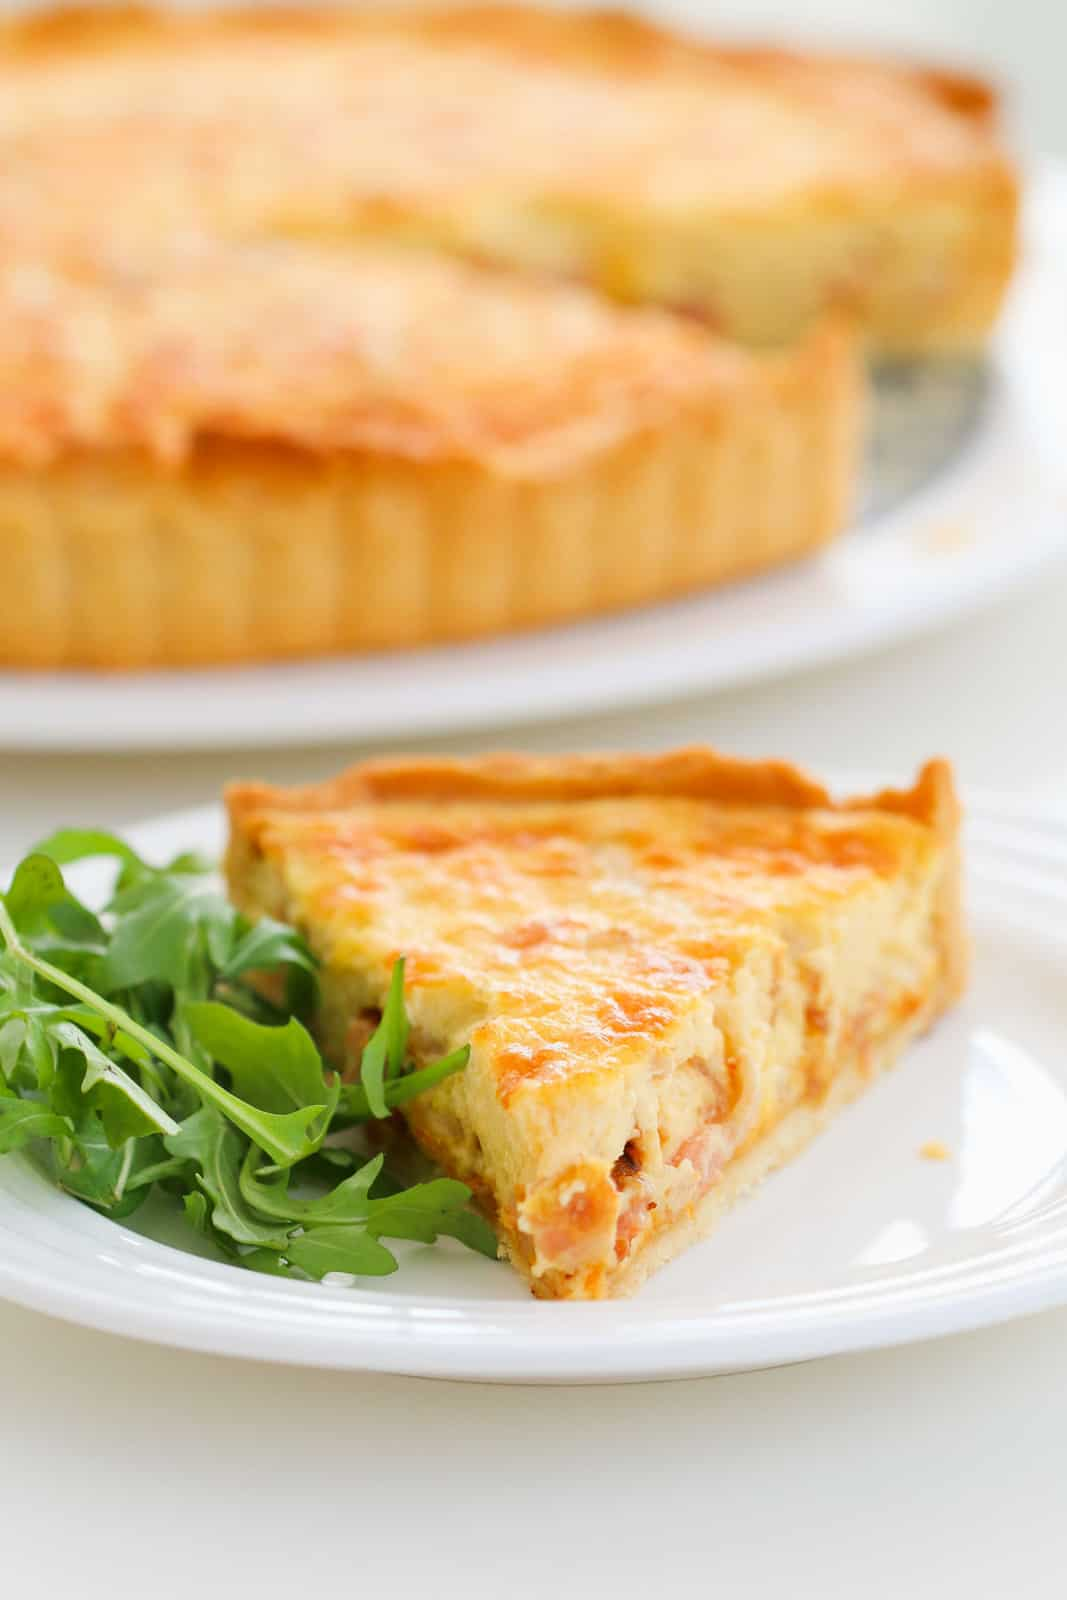 A triangular piece of egg, bacon and cheese quiche on a plate served with rocket leaves